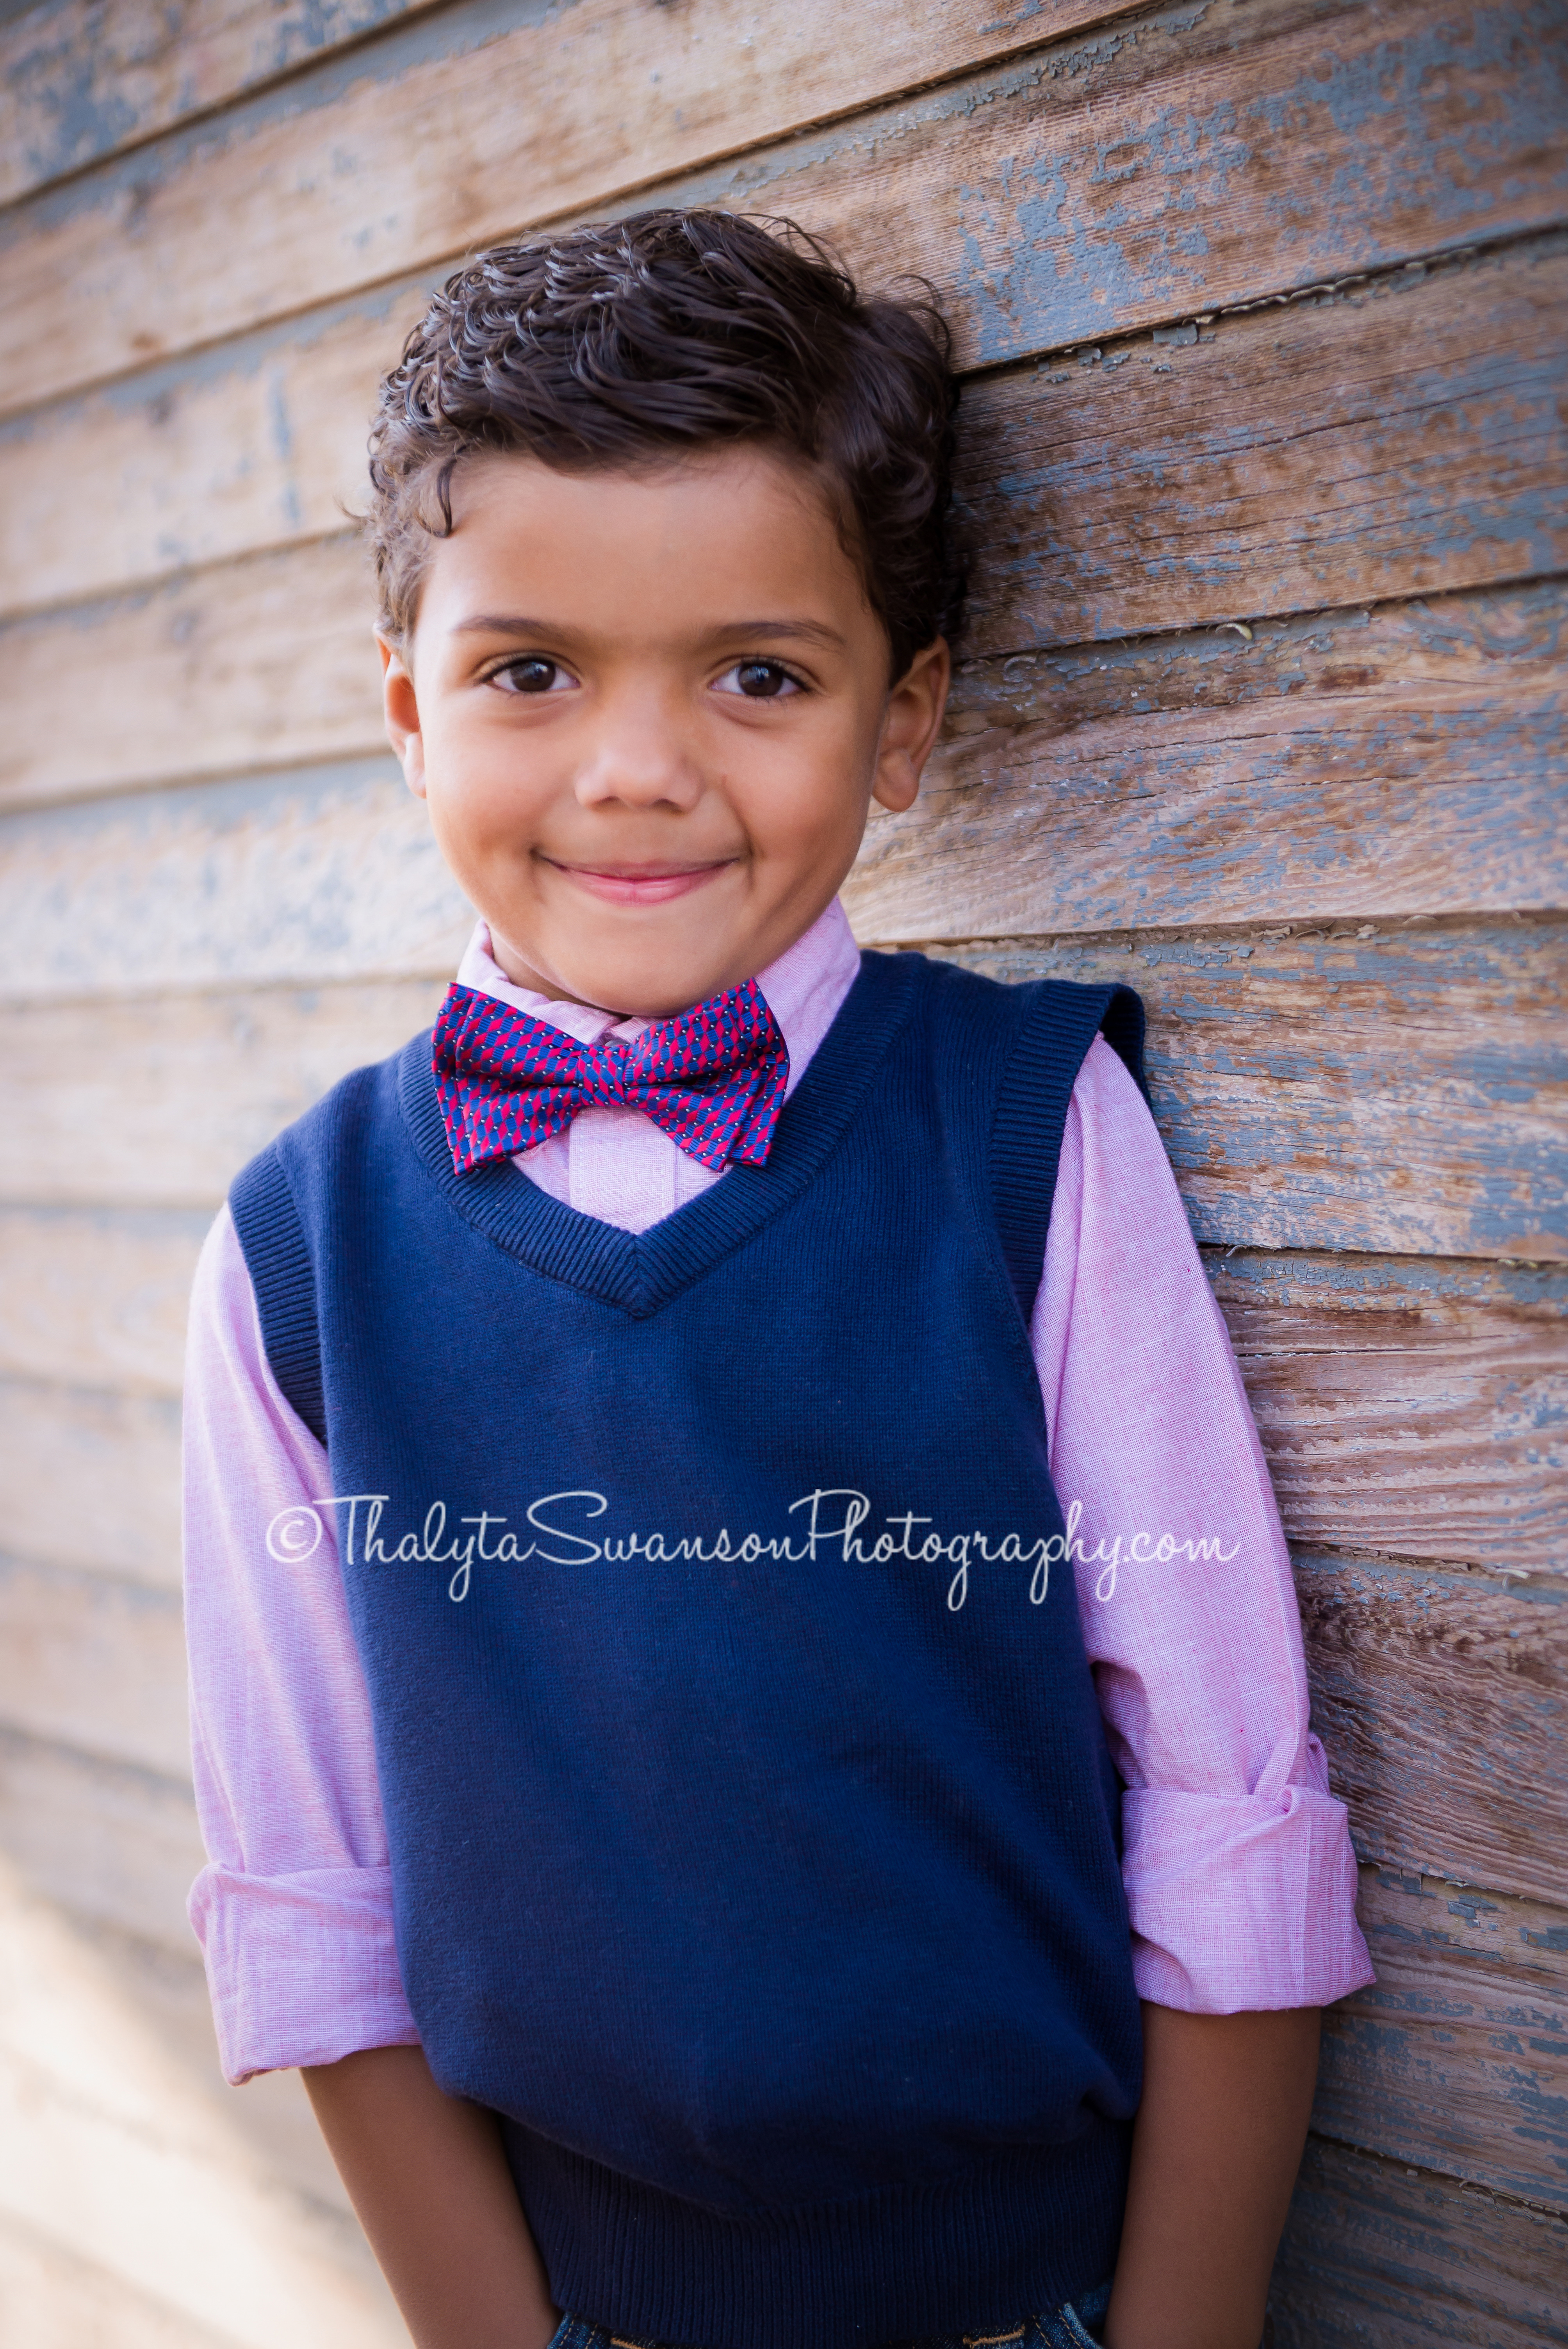 thalyta-swanson-photography-fort-collins-photographer-5